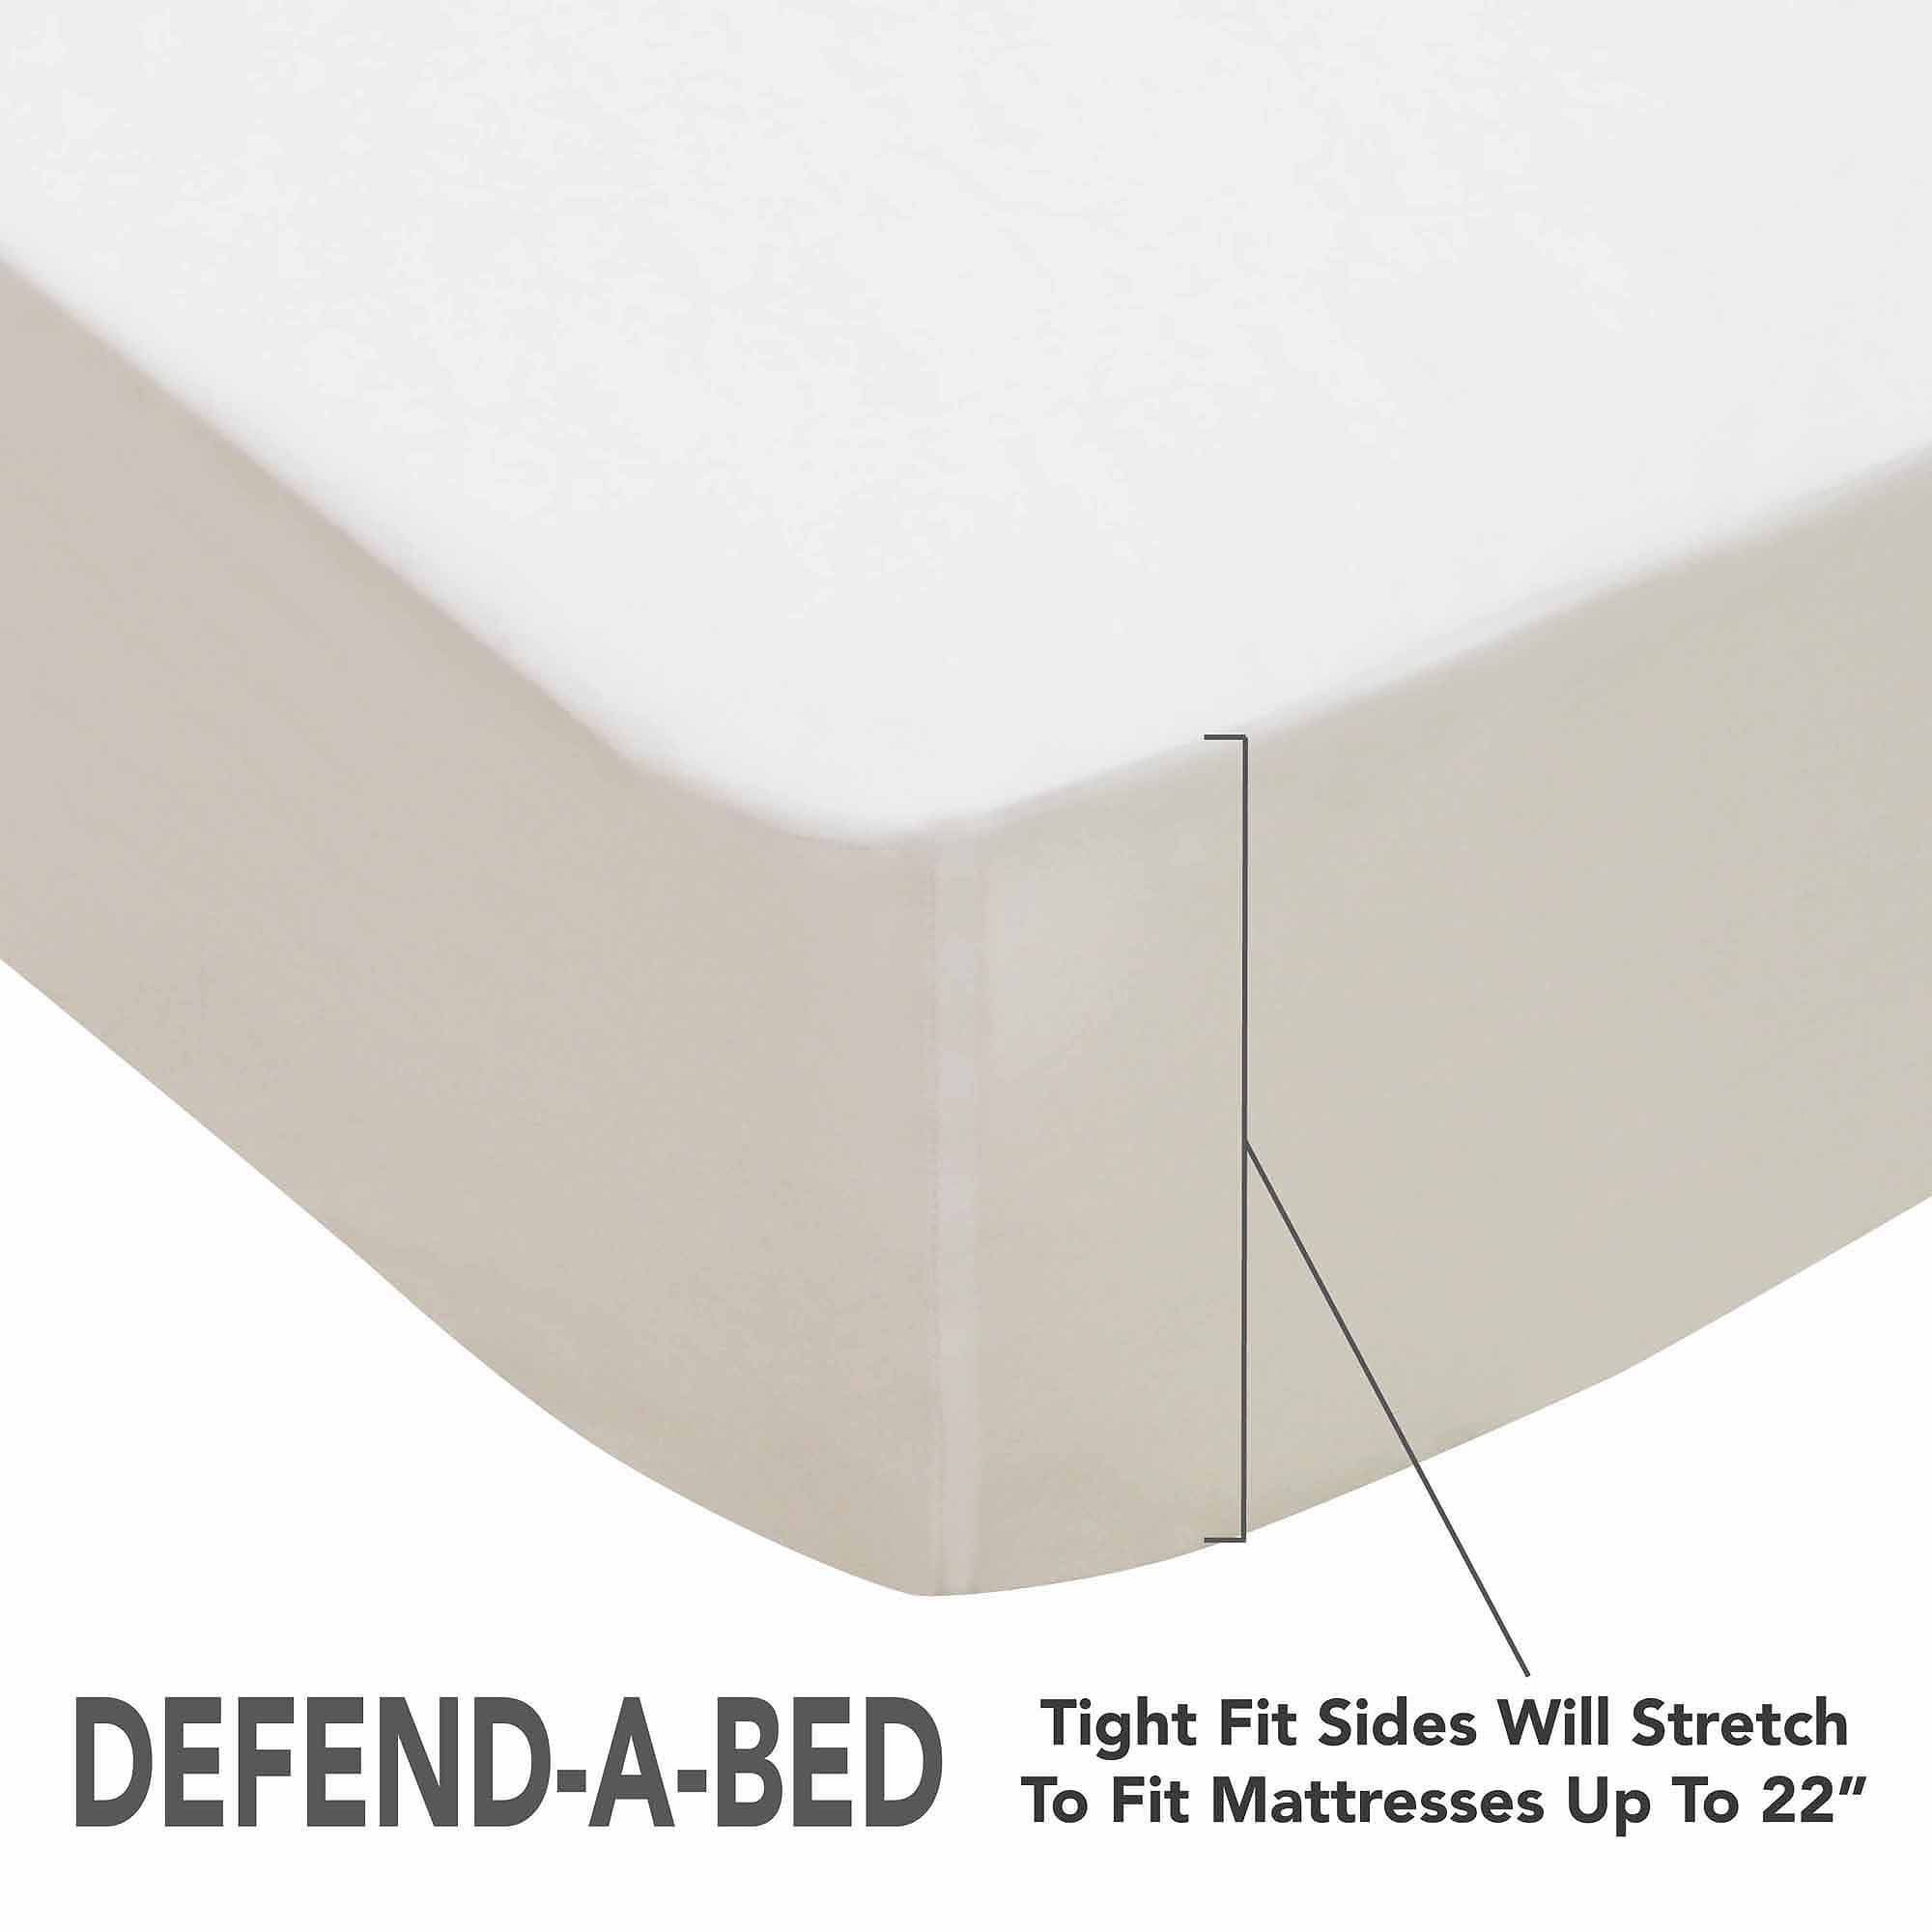 k textiles pillow king gb cm rugs protector protectors art rt mattress products en waterproof ikea g